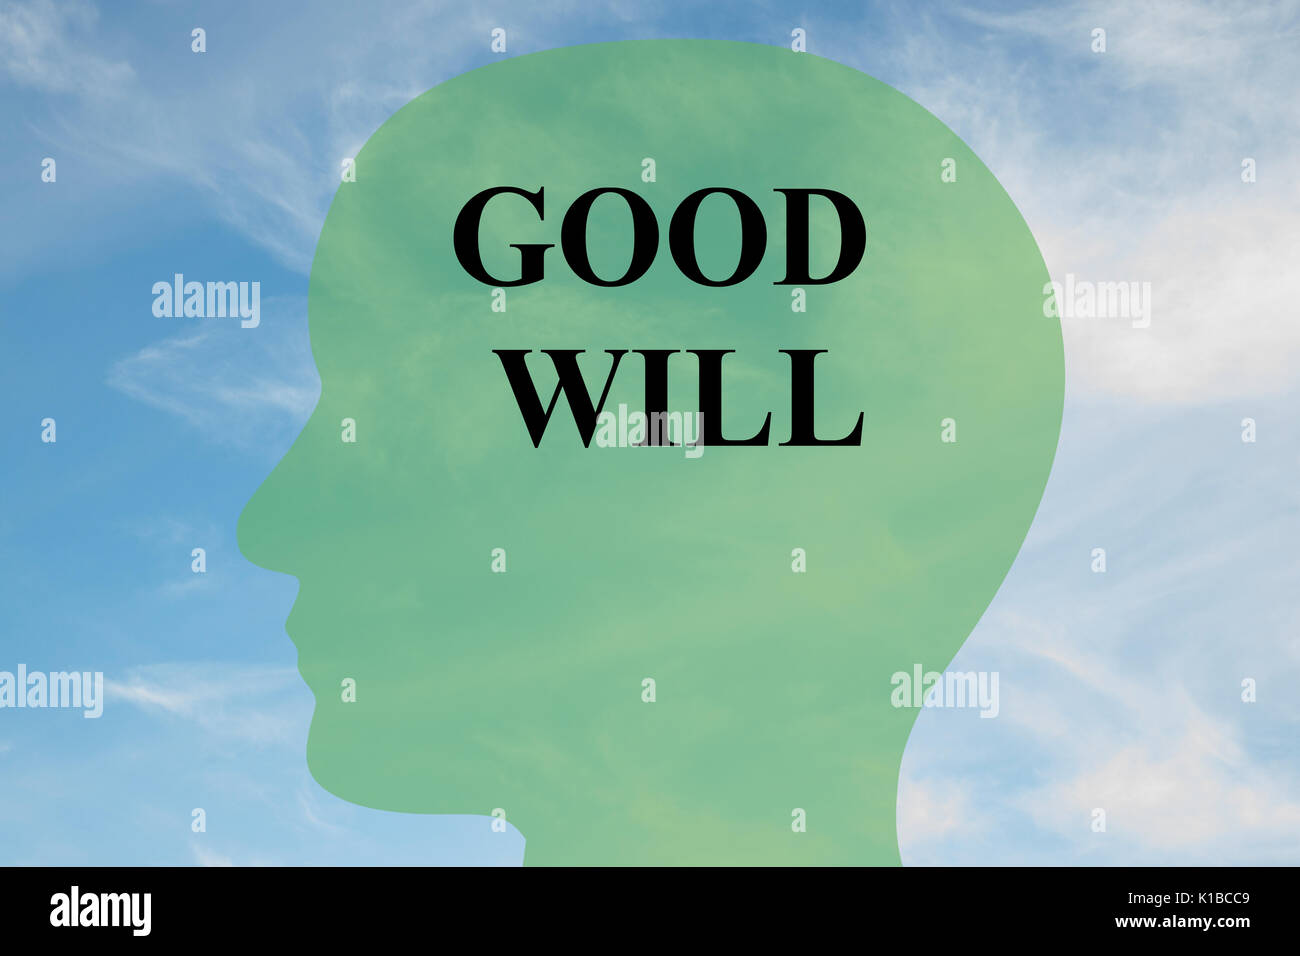 Render illustration of GOOD WILL script on head silhouette, with cloudy sky as a background. Human mind concept. - Stock Image